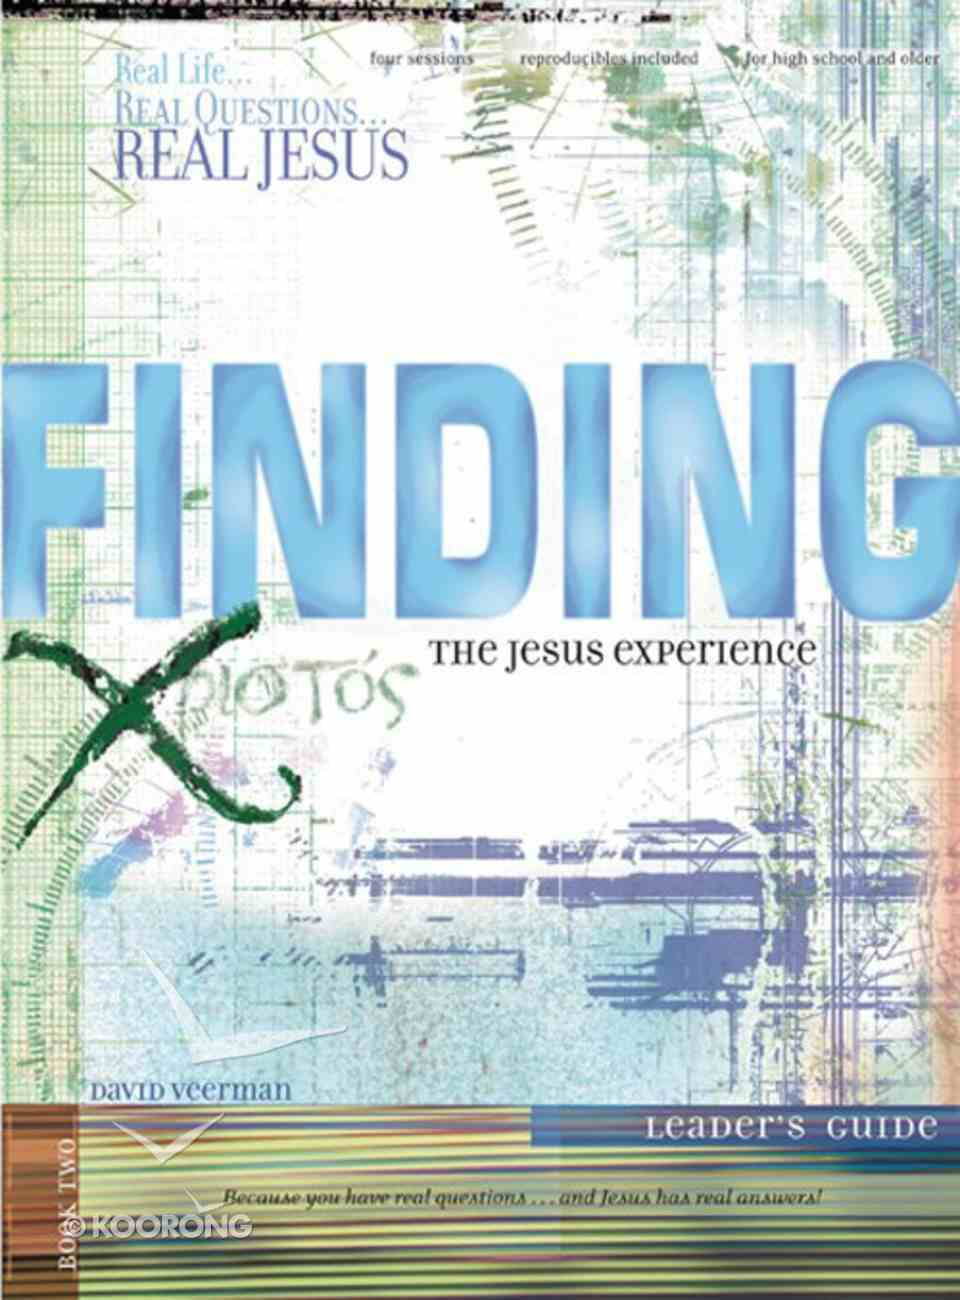 Finding the Jesus Experience (Leader's Guide) (#02 in Real Series) Paperback